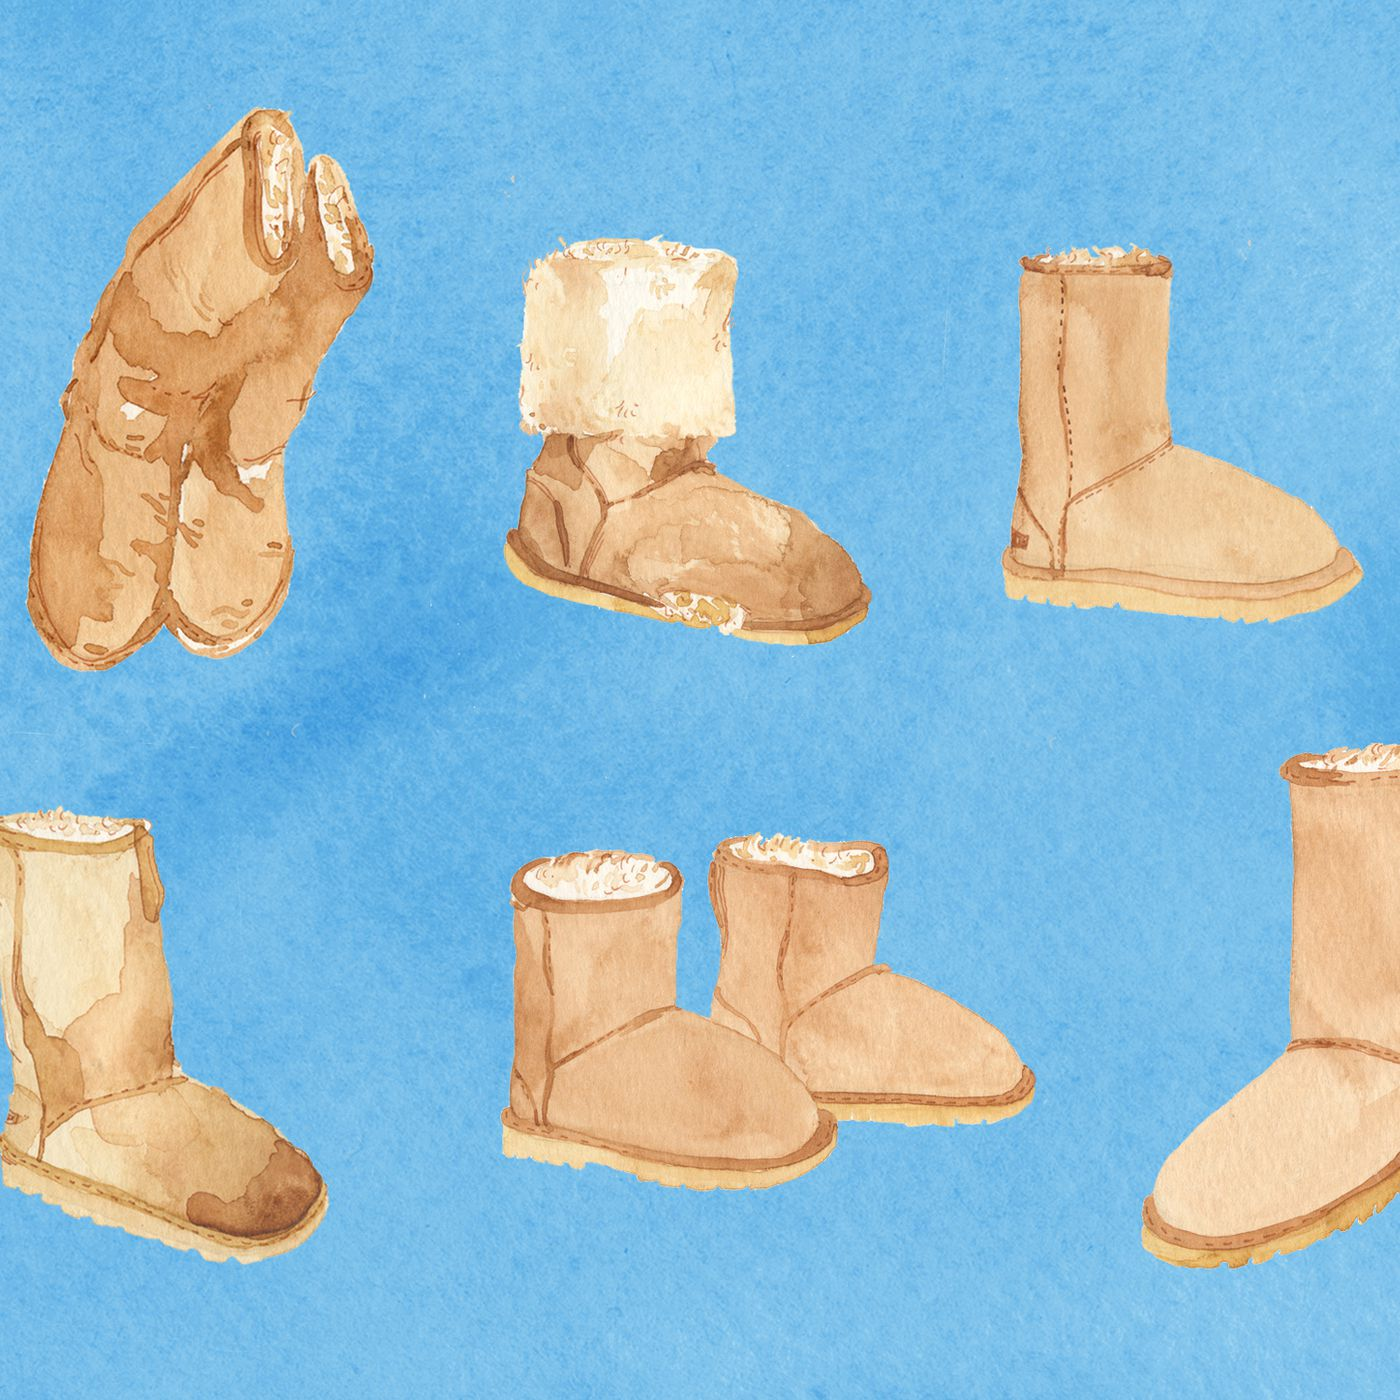 fd186bb1440 What to Do About Your Grimy, Smelly Uggs - Racked